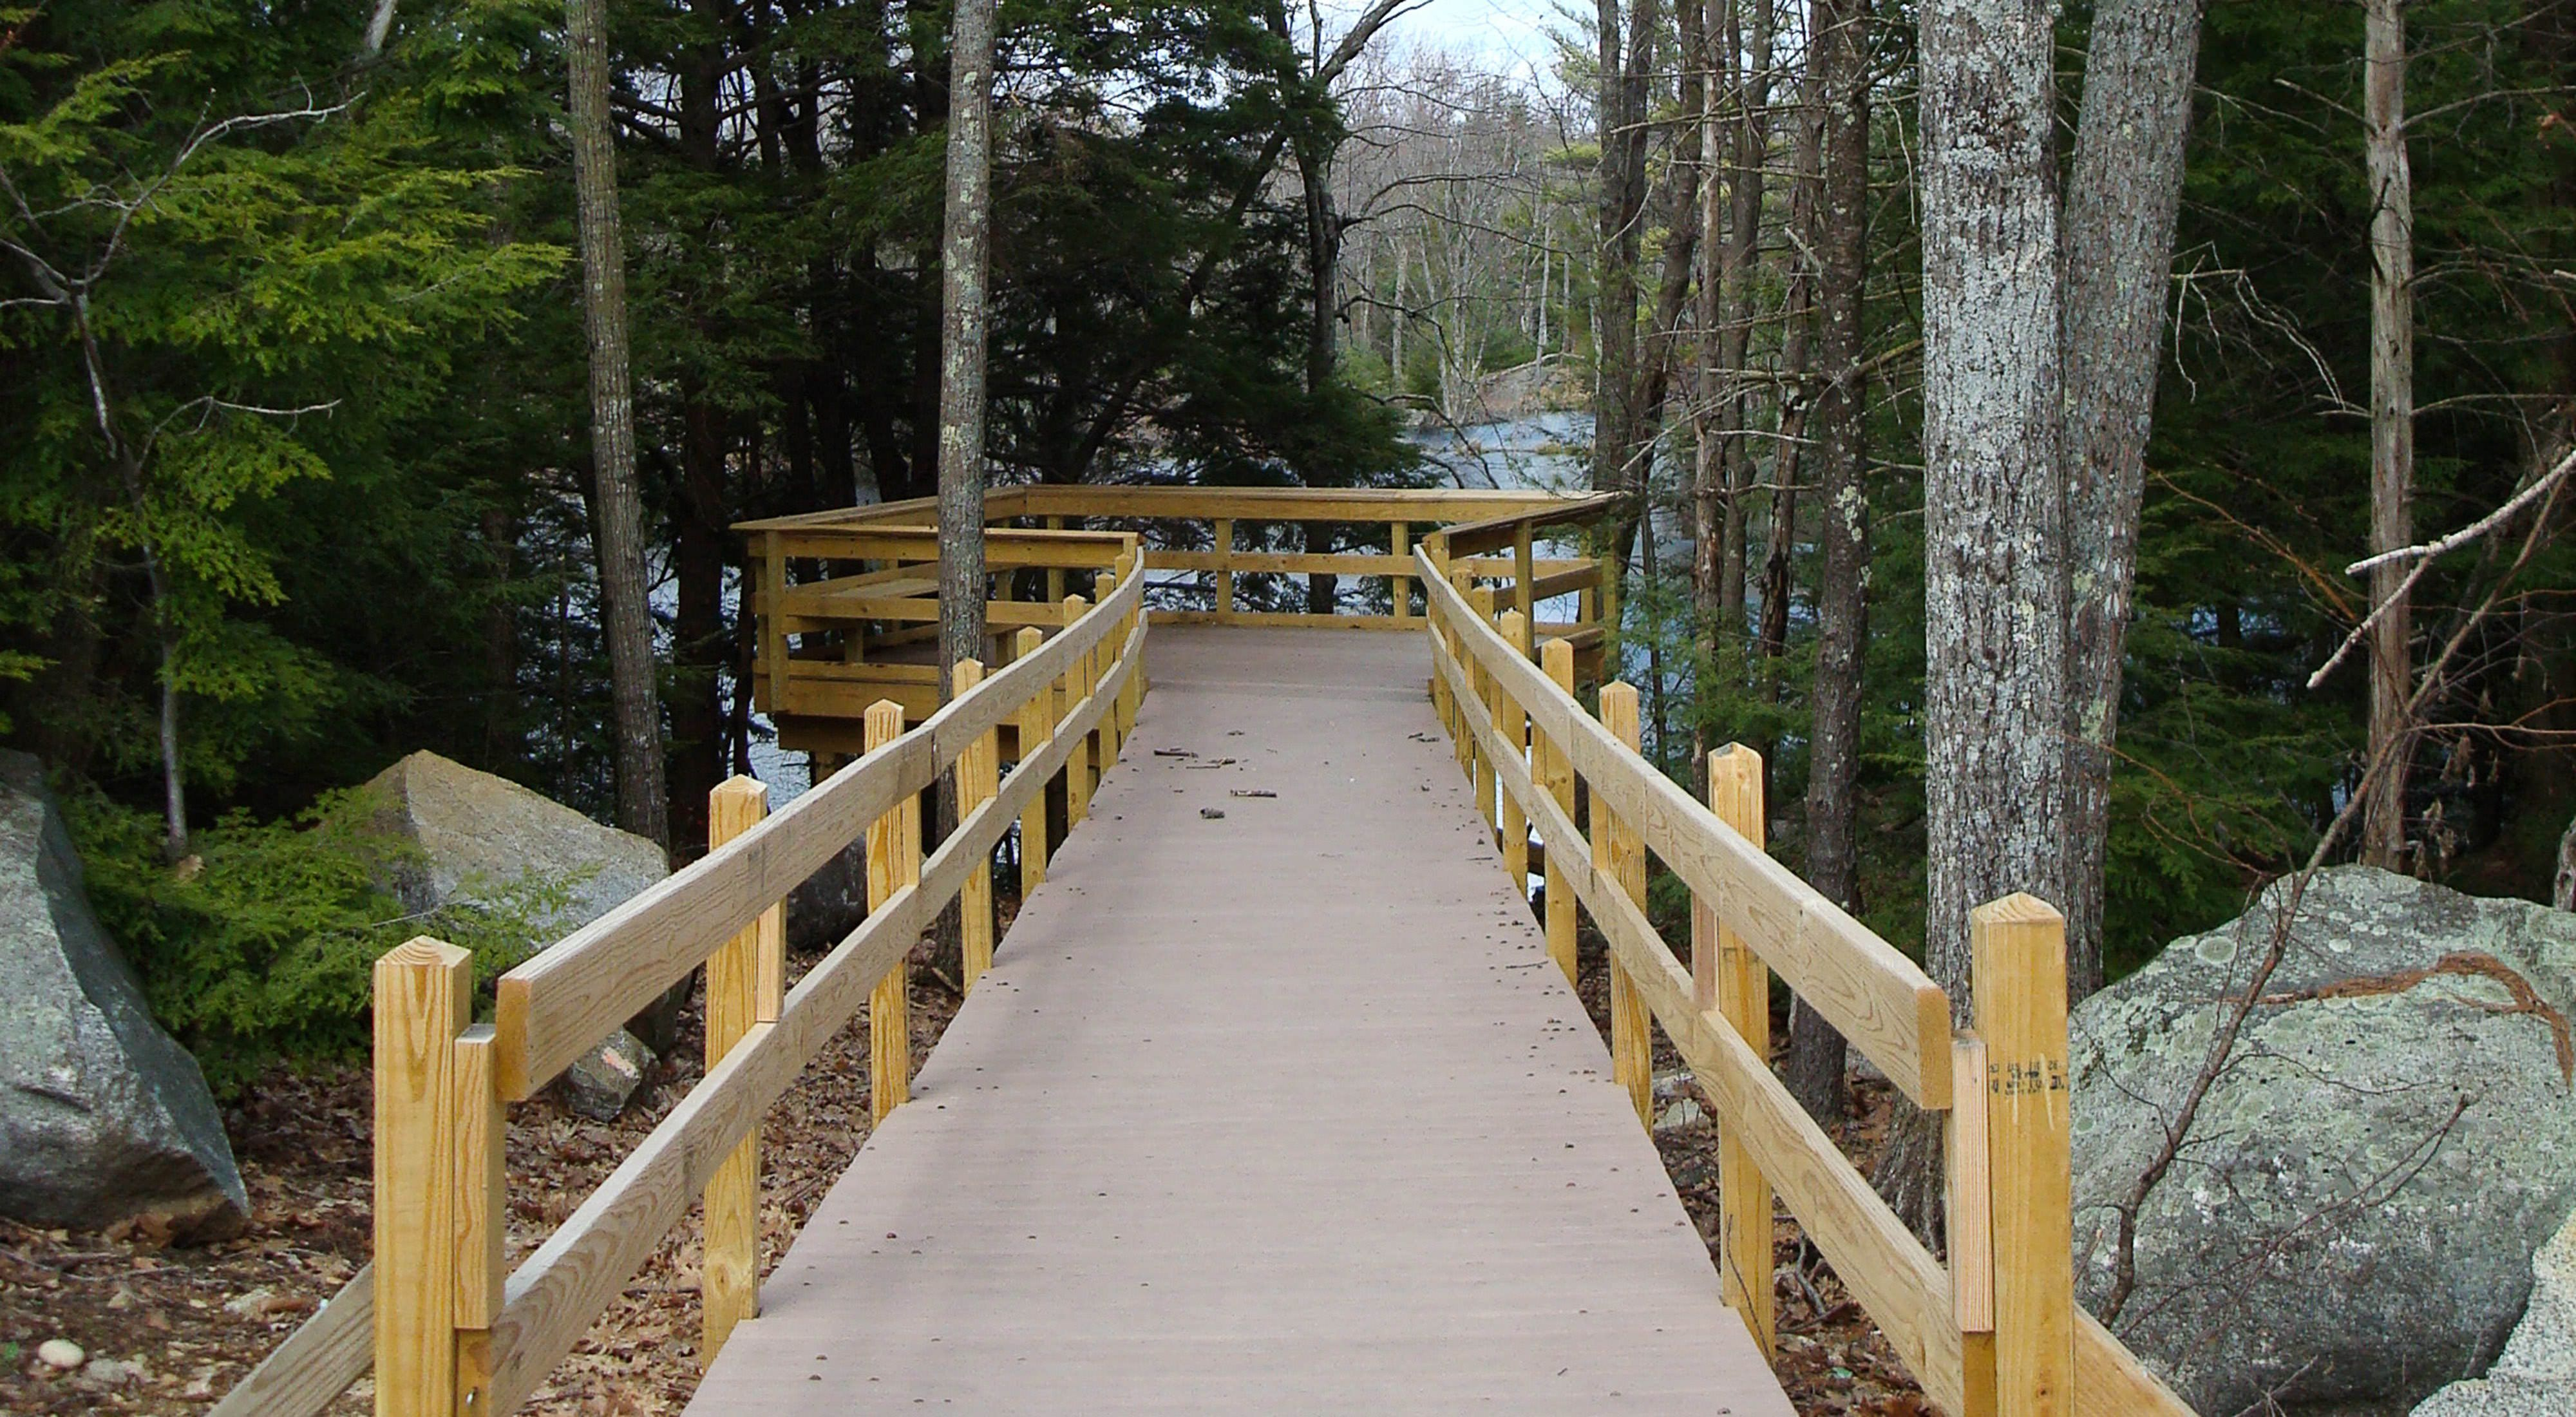 The 4.3-mile Sweet Trail runs from Longmarsh Road in Durham to Great Bay at the Lubberland Creek Preserve in Newmarket, New Hampshire.